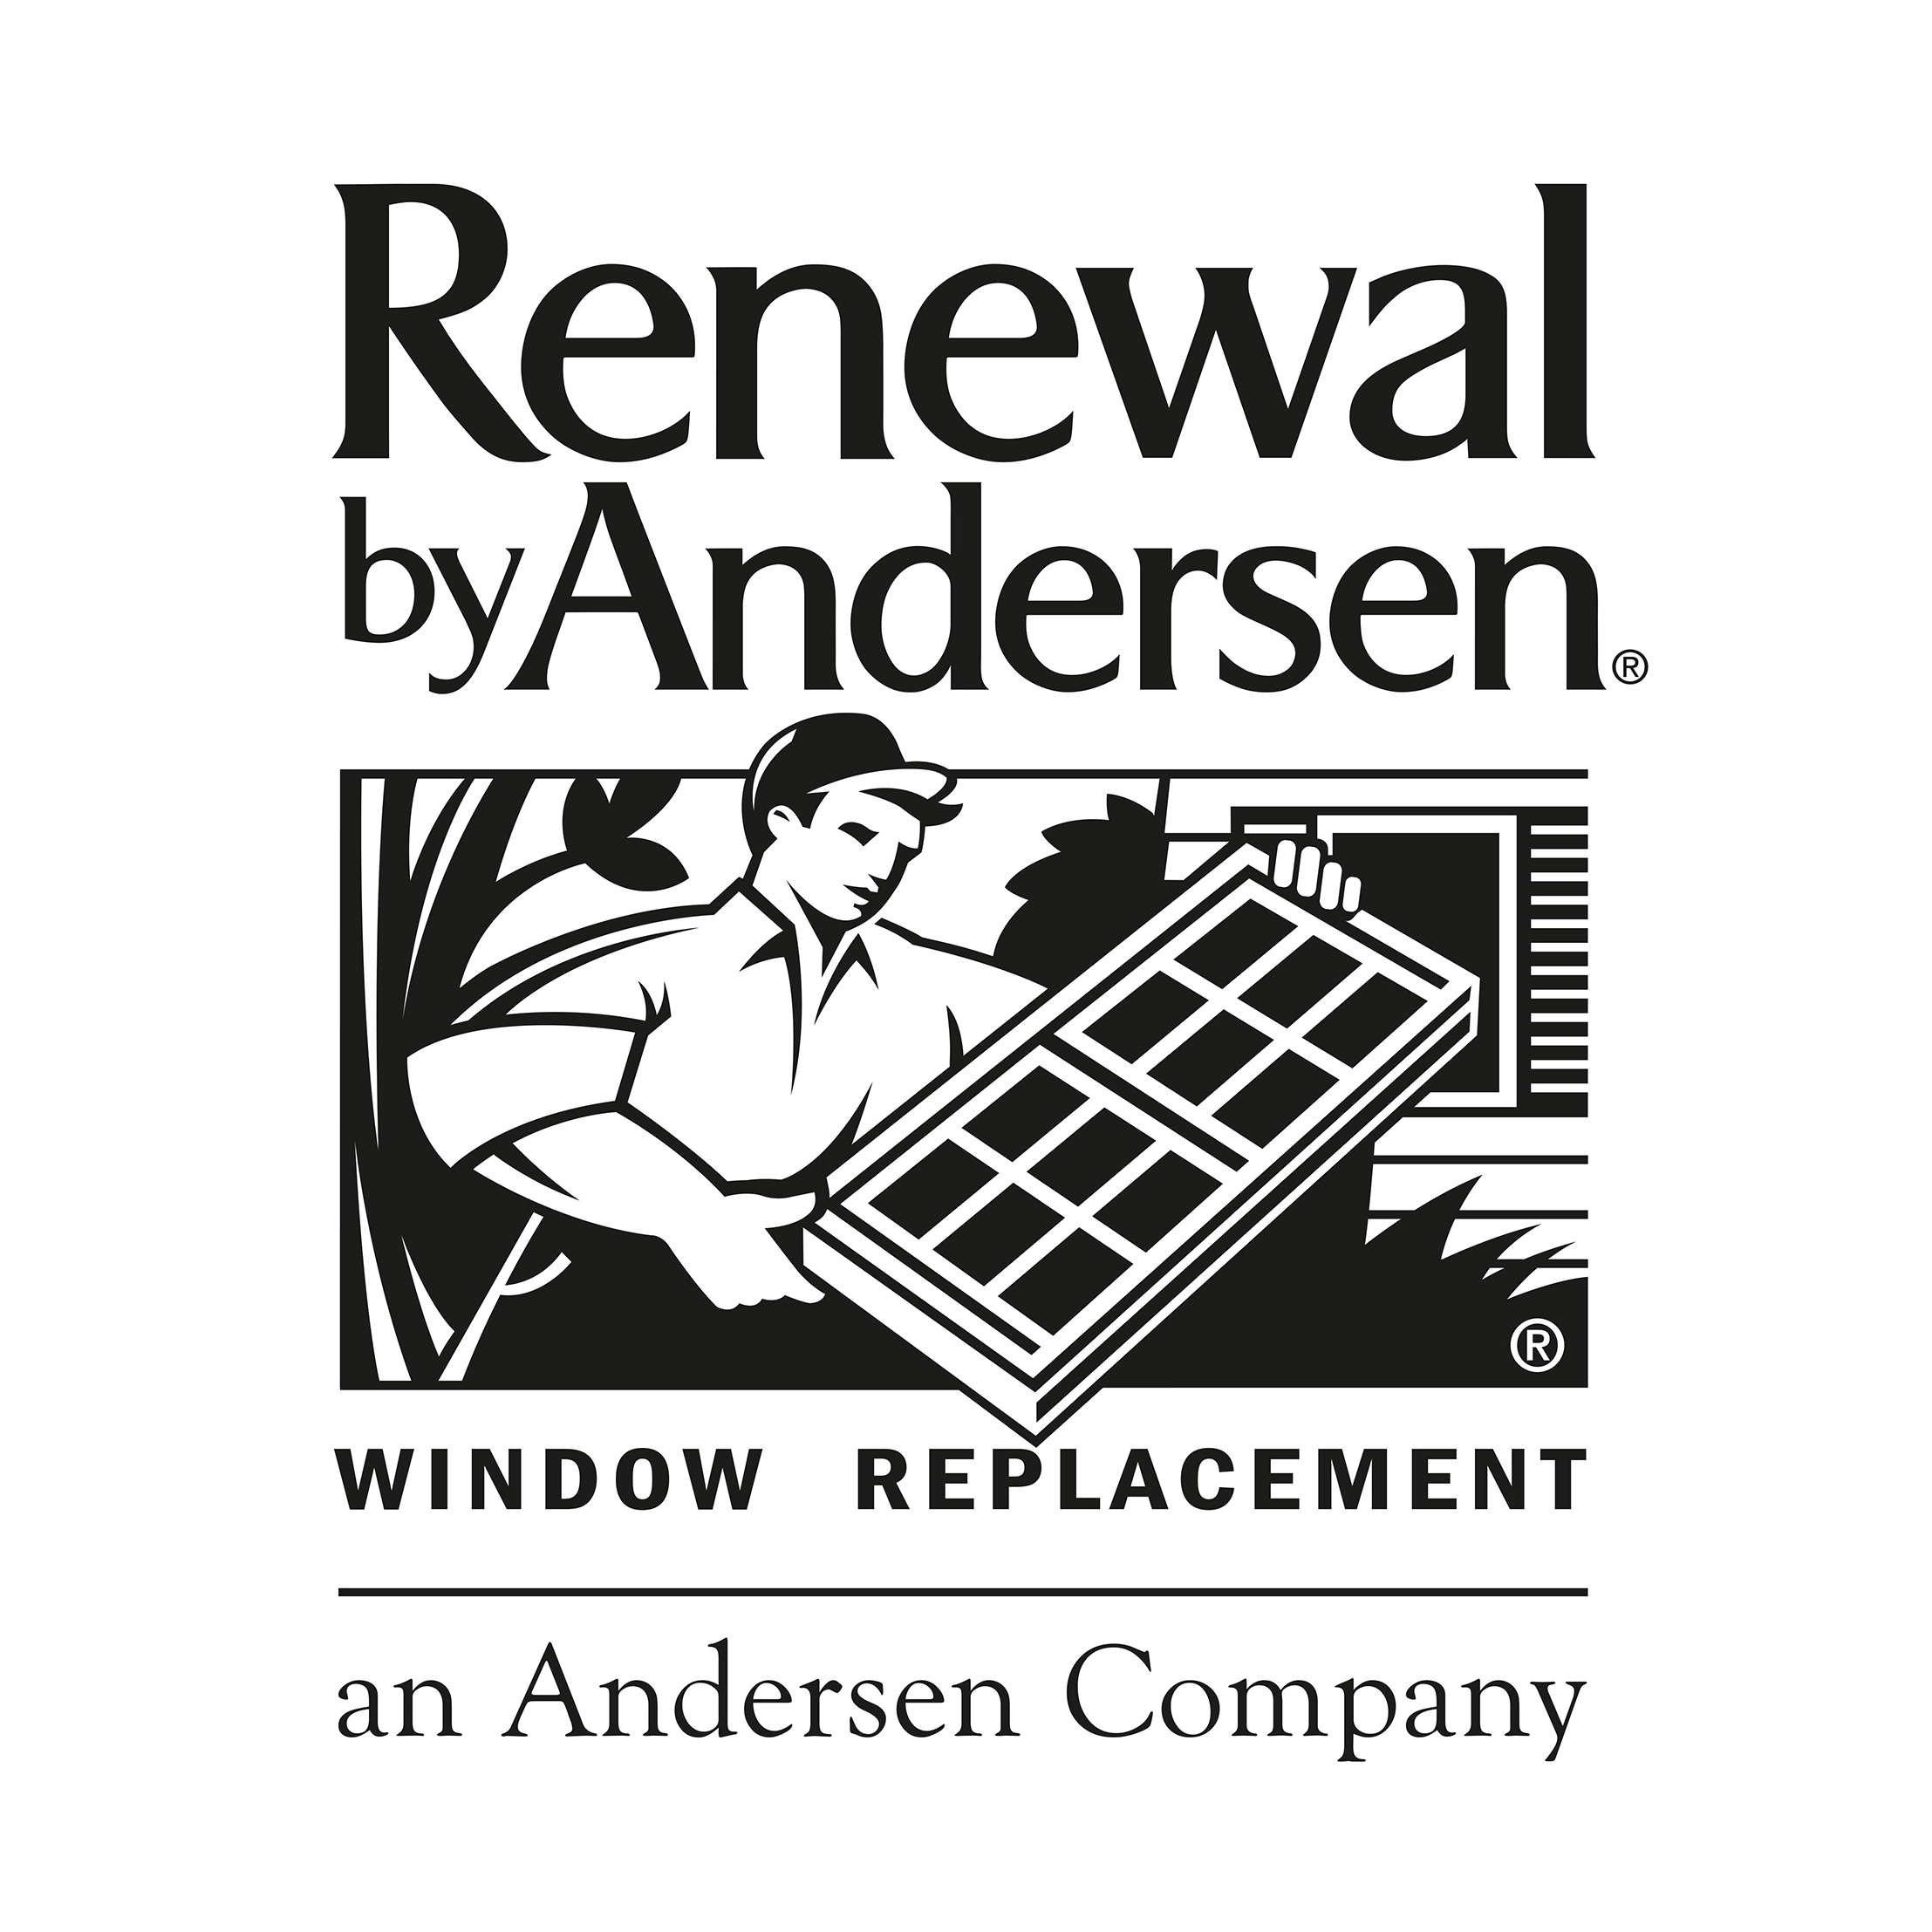 Renewal by andersen of sacramento 5 photos windows and for Renew home designs reviews